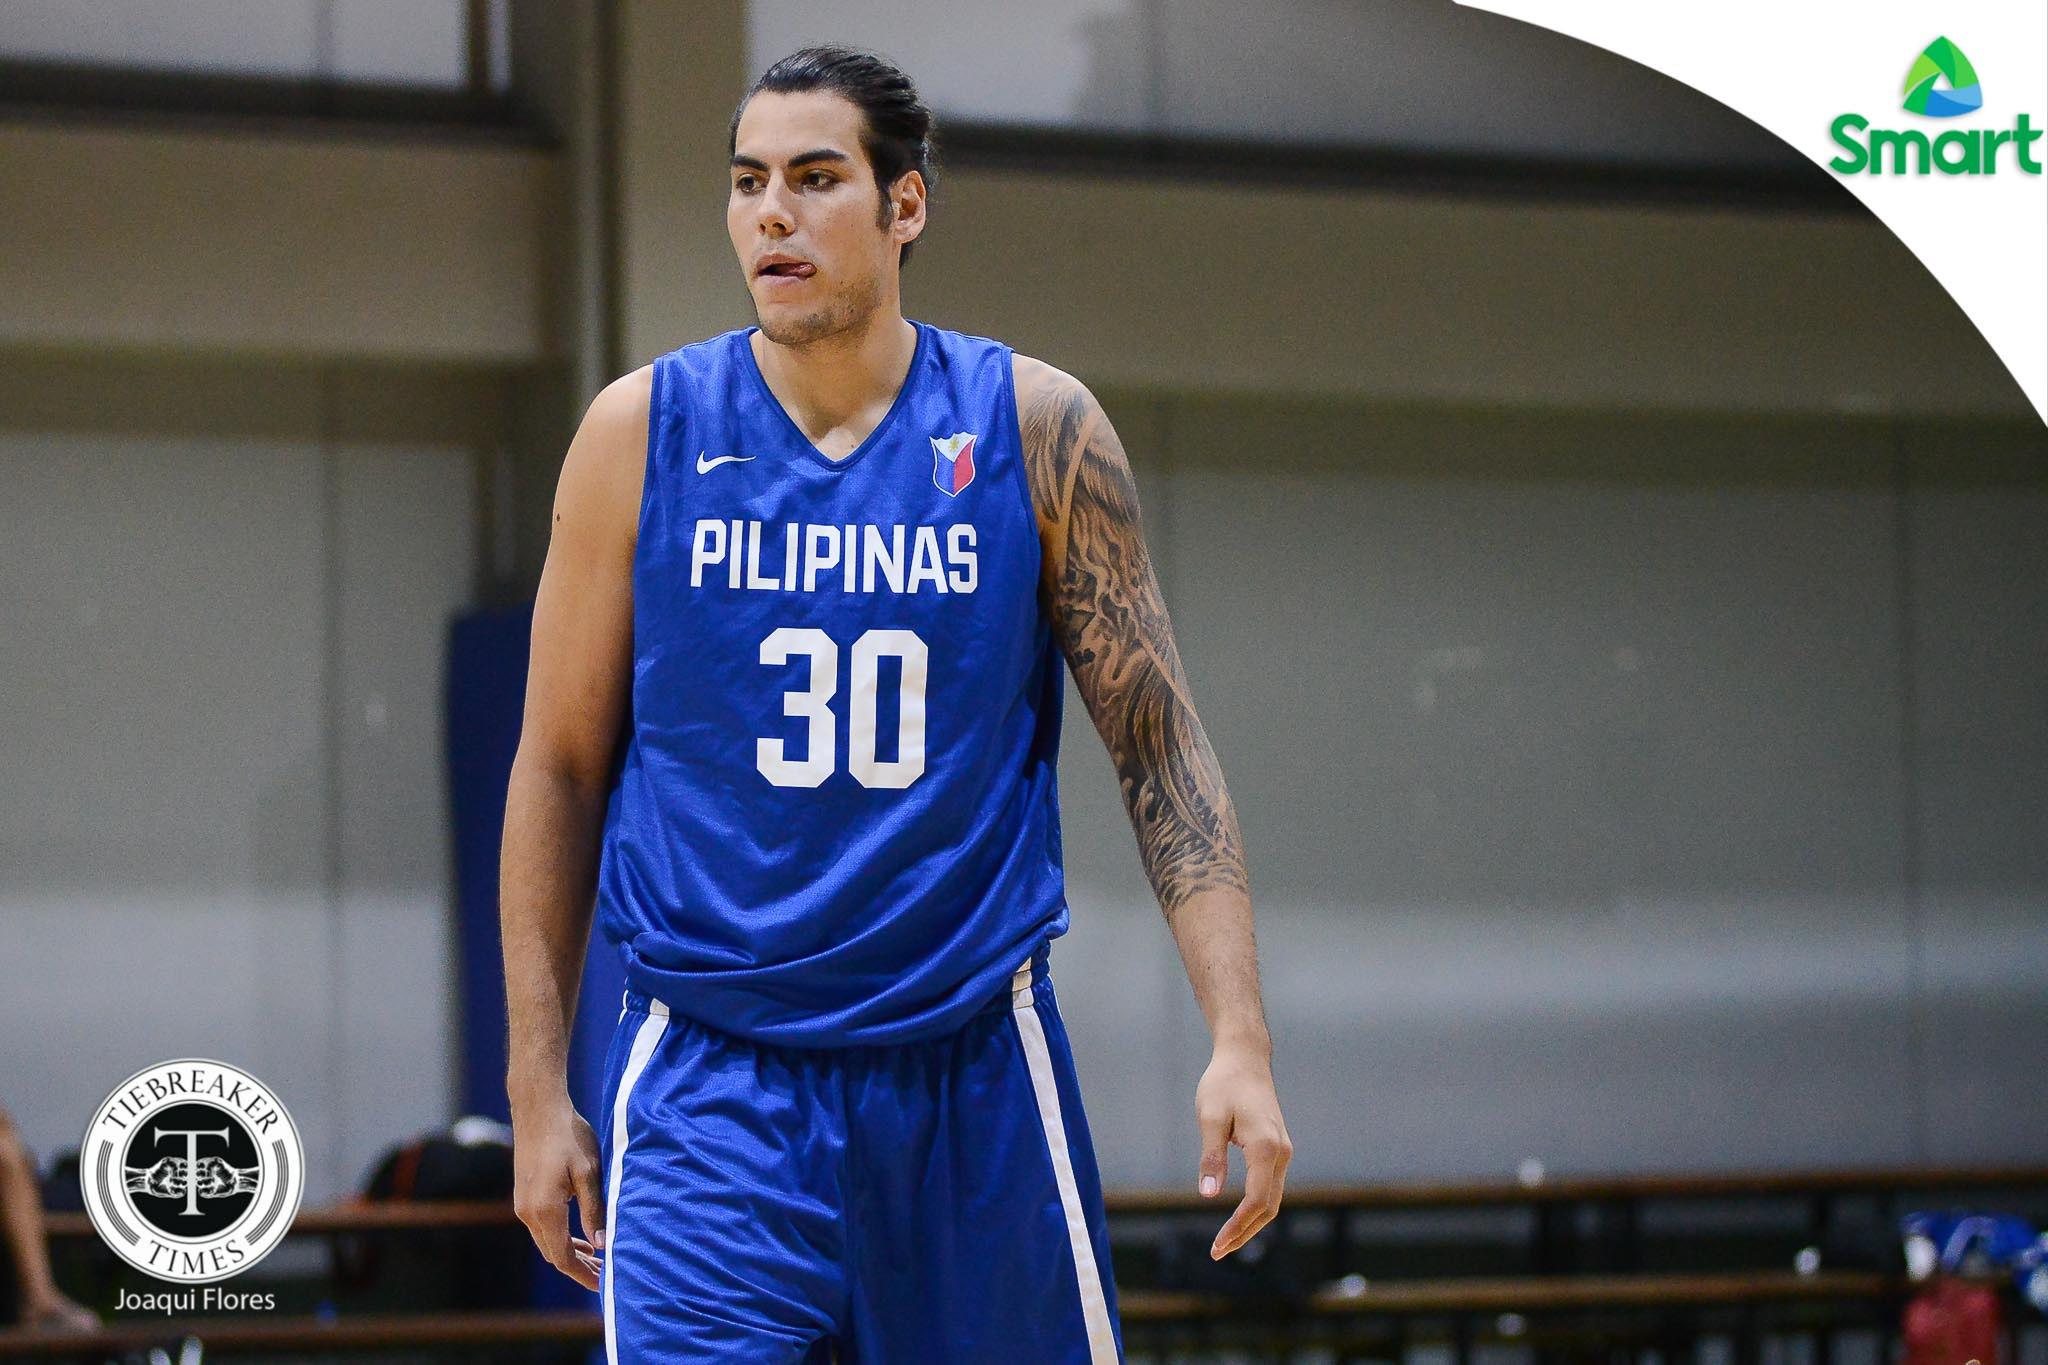 Philippine Sports News - Tiebreaker Times Better Late than Never: Standhardinger owes Gilas pizza after being late once more Basketball Gilas Pilipinas News  Gabe Norwood Christian Standhardinger Chot Reyes 2017 SEA Games - Basketball 2017 FIBA Asia Cup